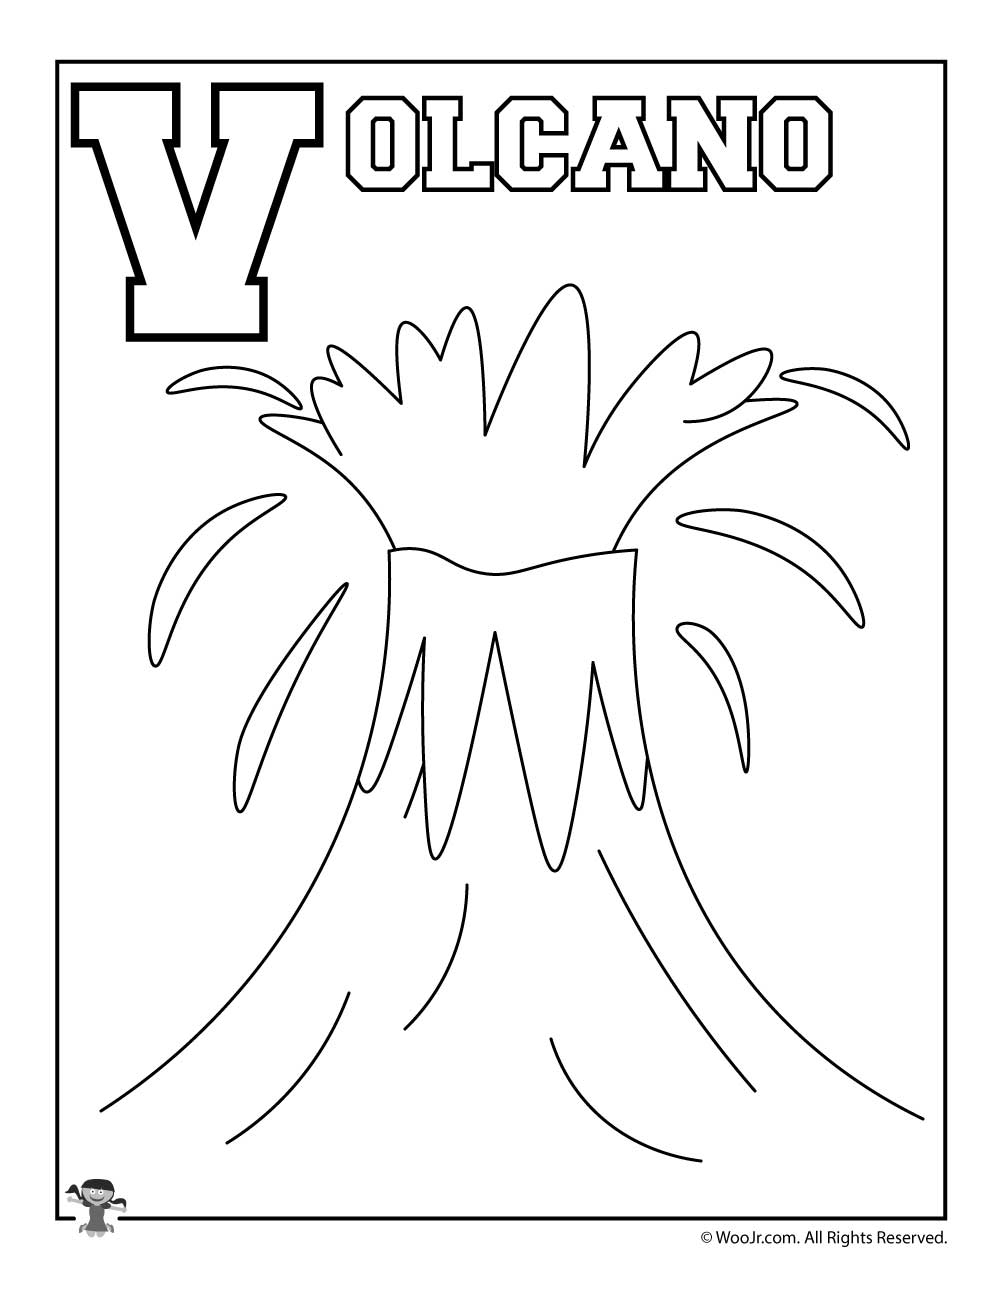 V Is For Volcano Coloring Page Woo Jr Kids Activities